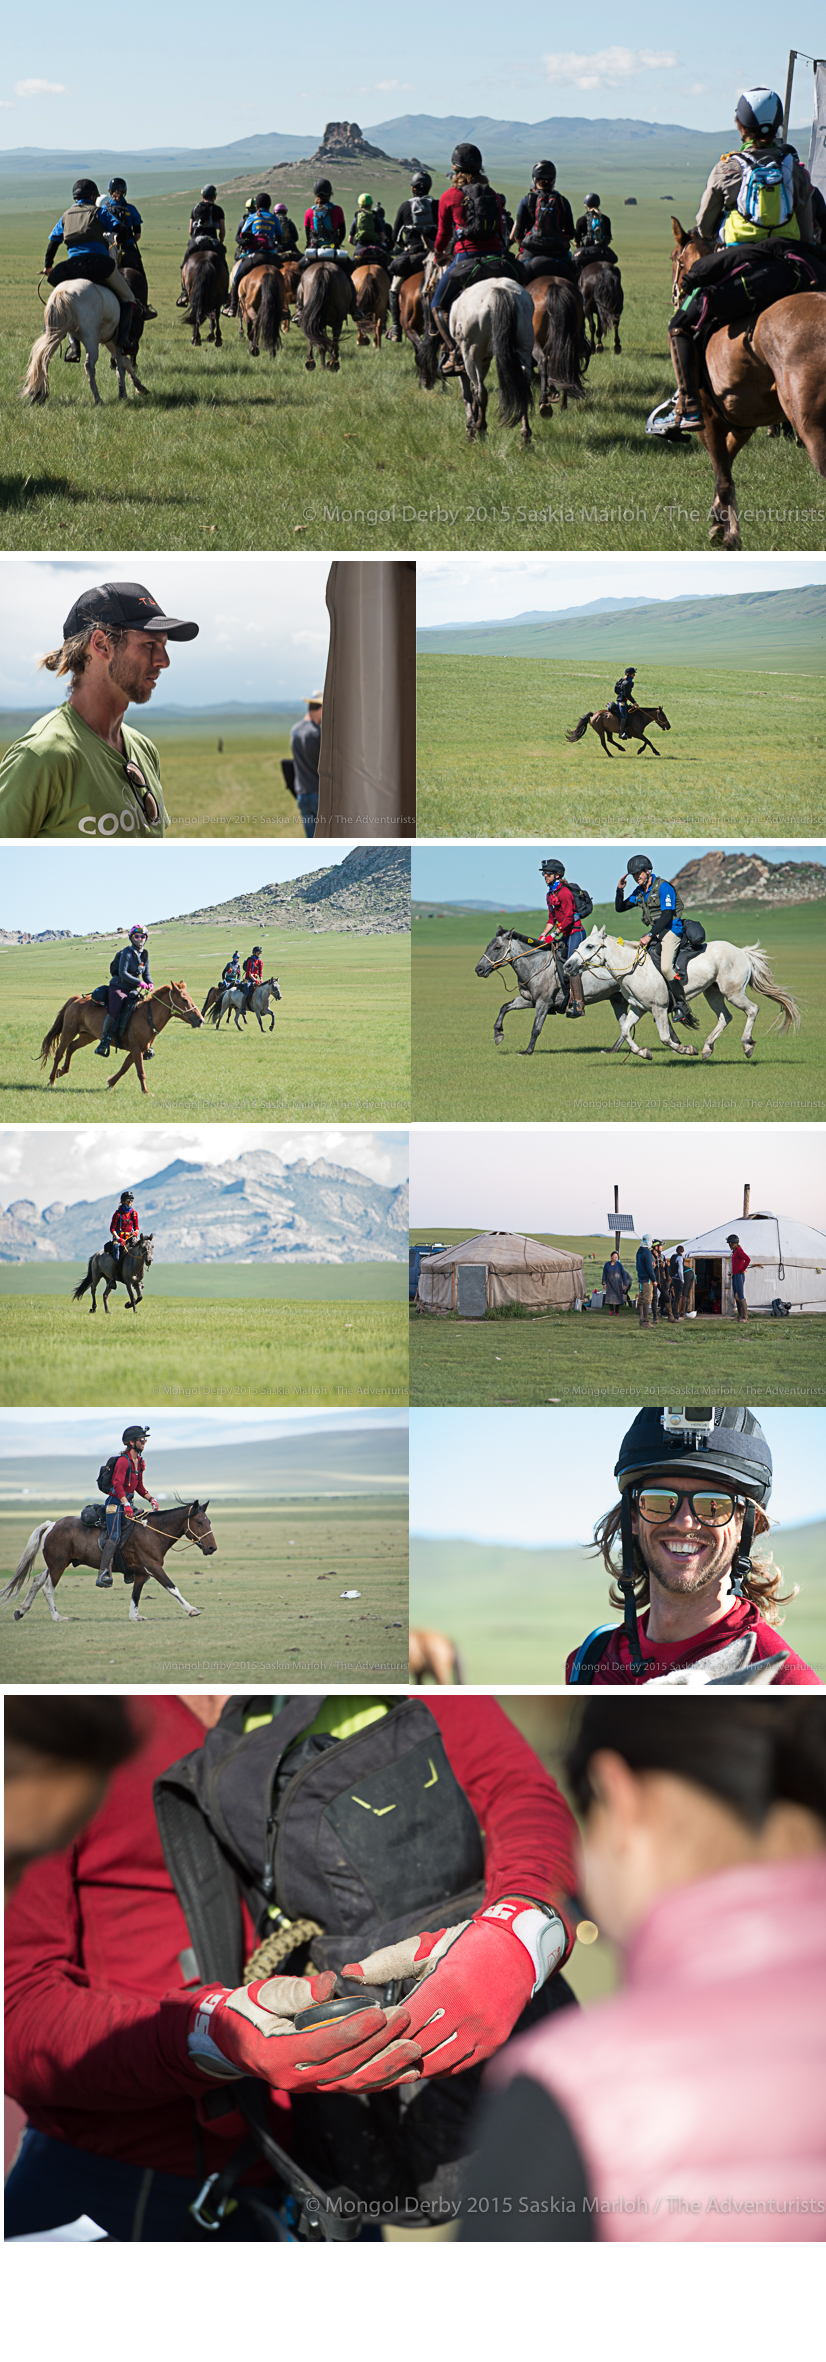 Ben Wilks, place 3 of the Mongol Derby 2015 photos by Saskia Marloh